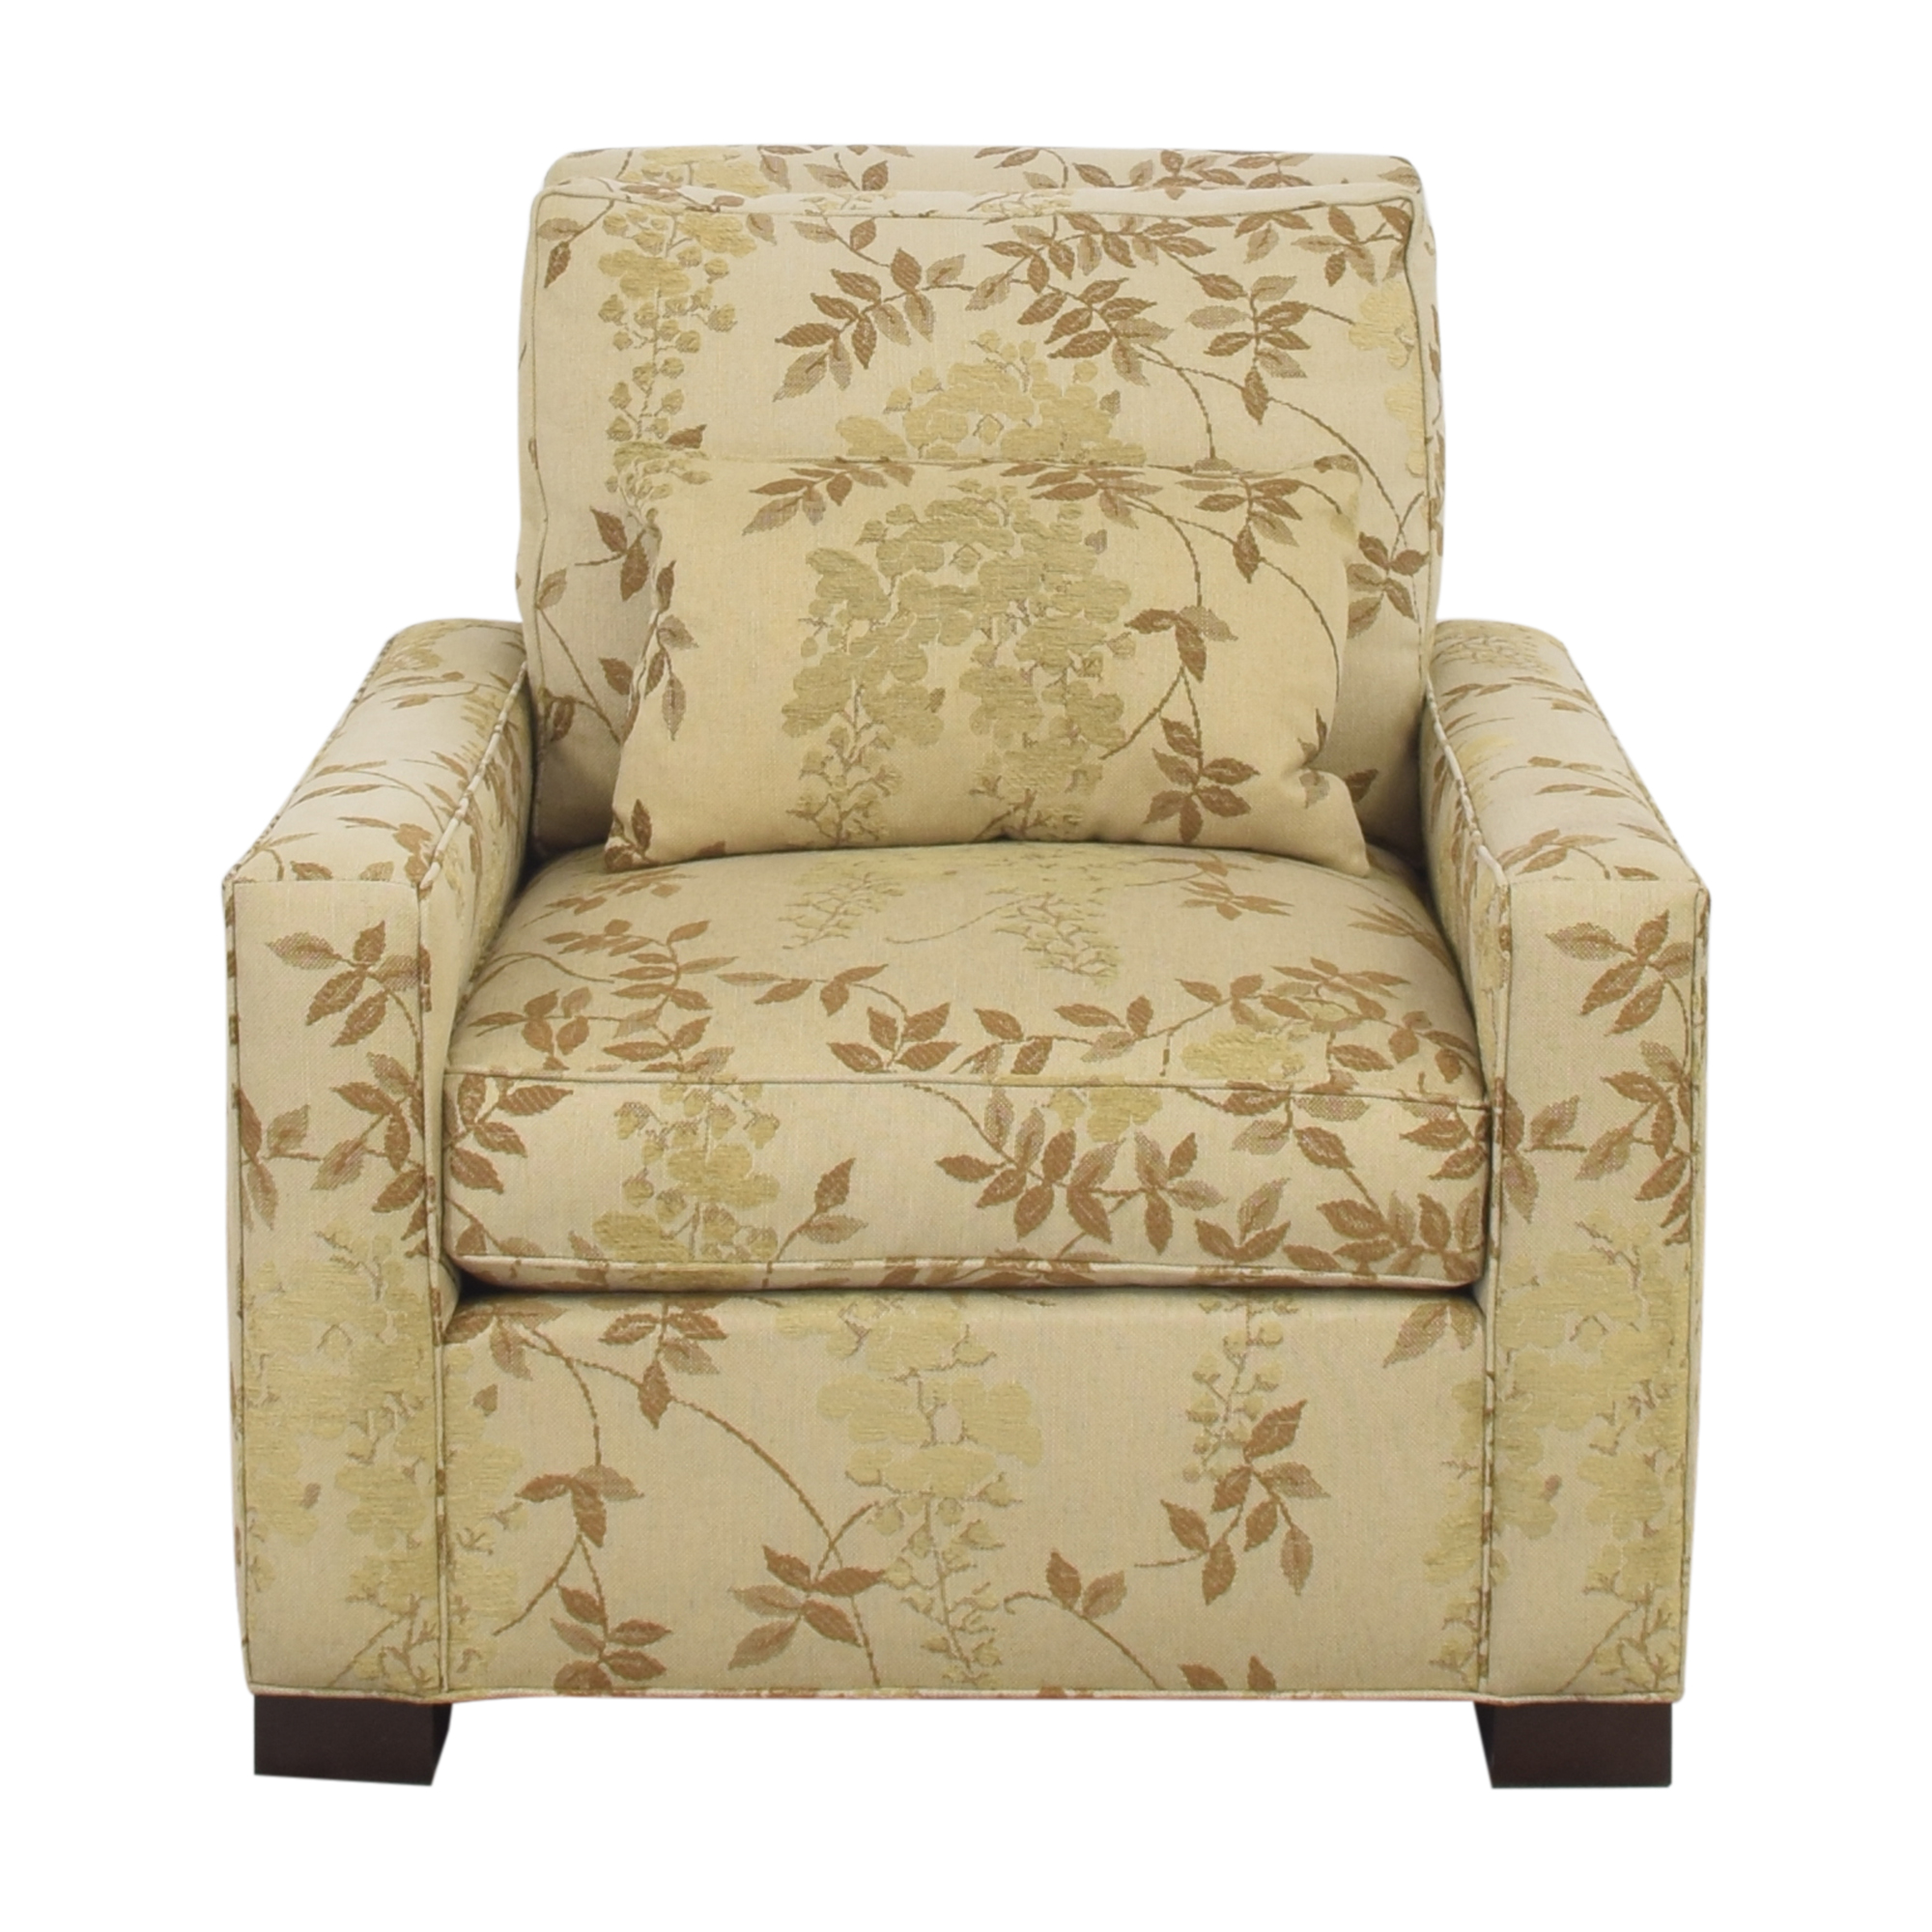 Hickory Chair Hickory Chair Upholstered Club Chair pa